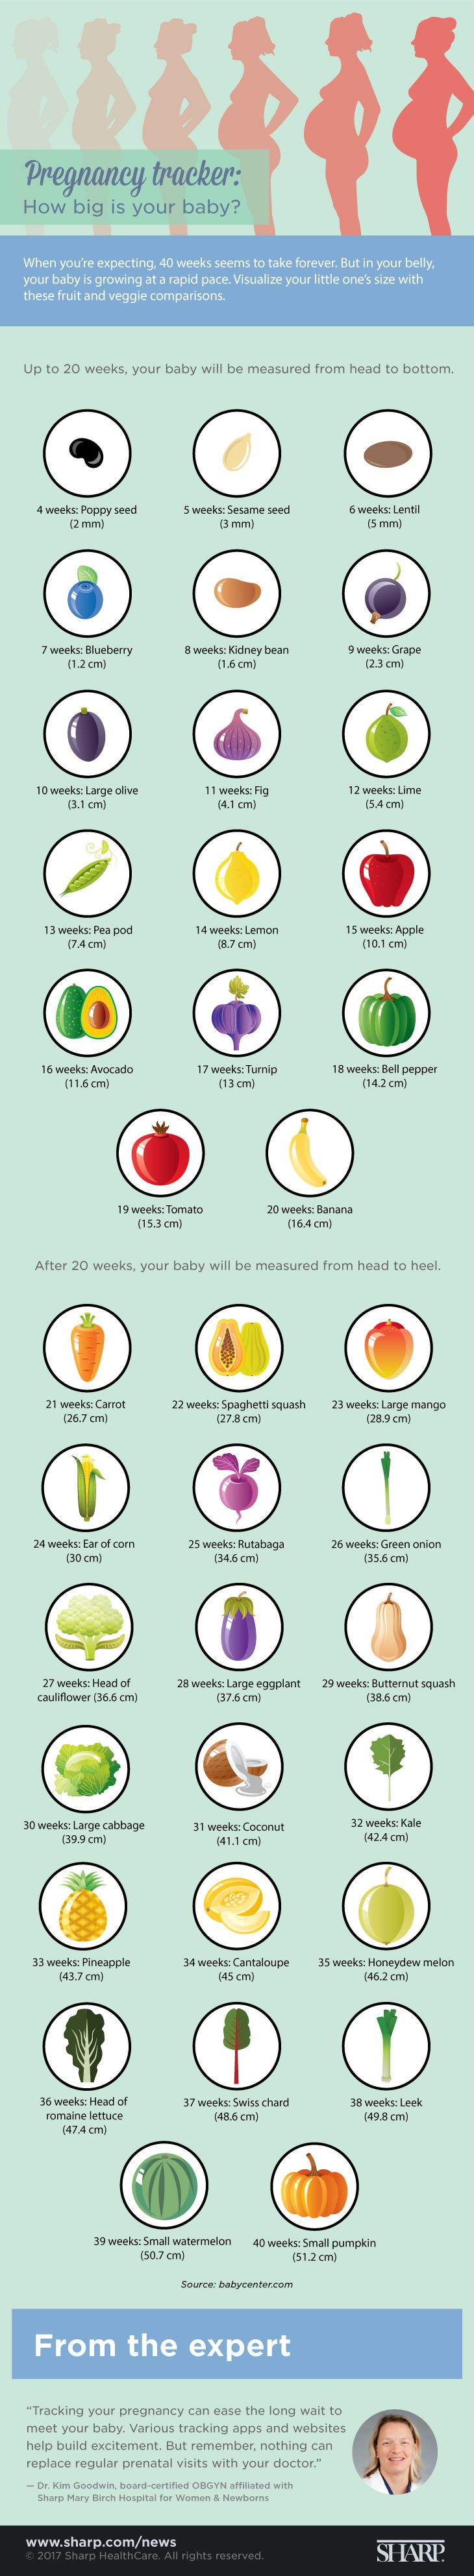 Visualize your little one's size with these fruit and veggie comparisons. #pregnancy